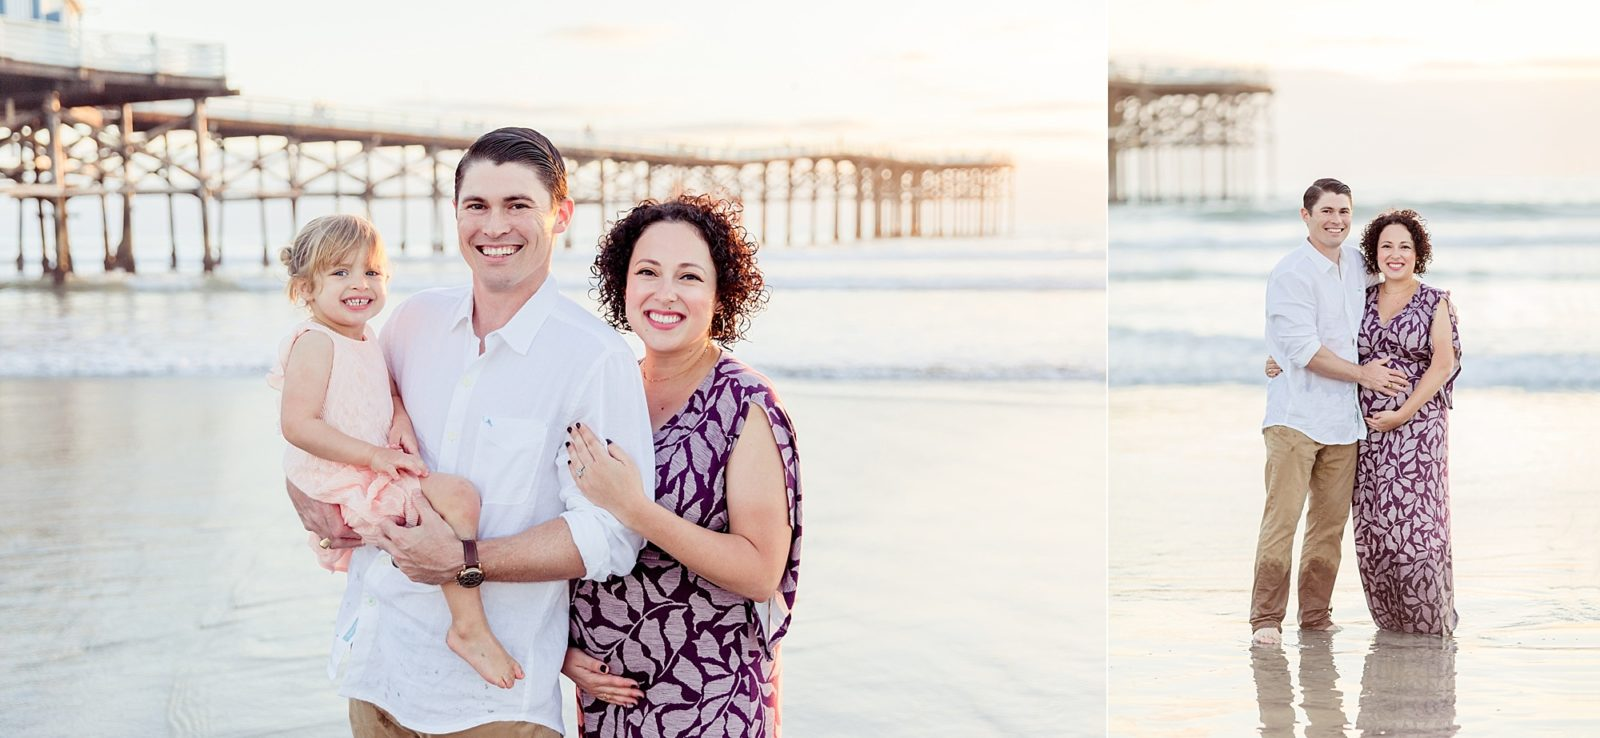 San Diego Photography | Amy Gray Photography